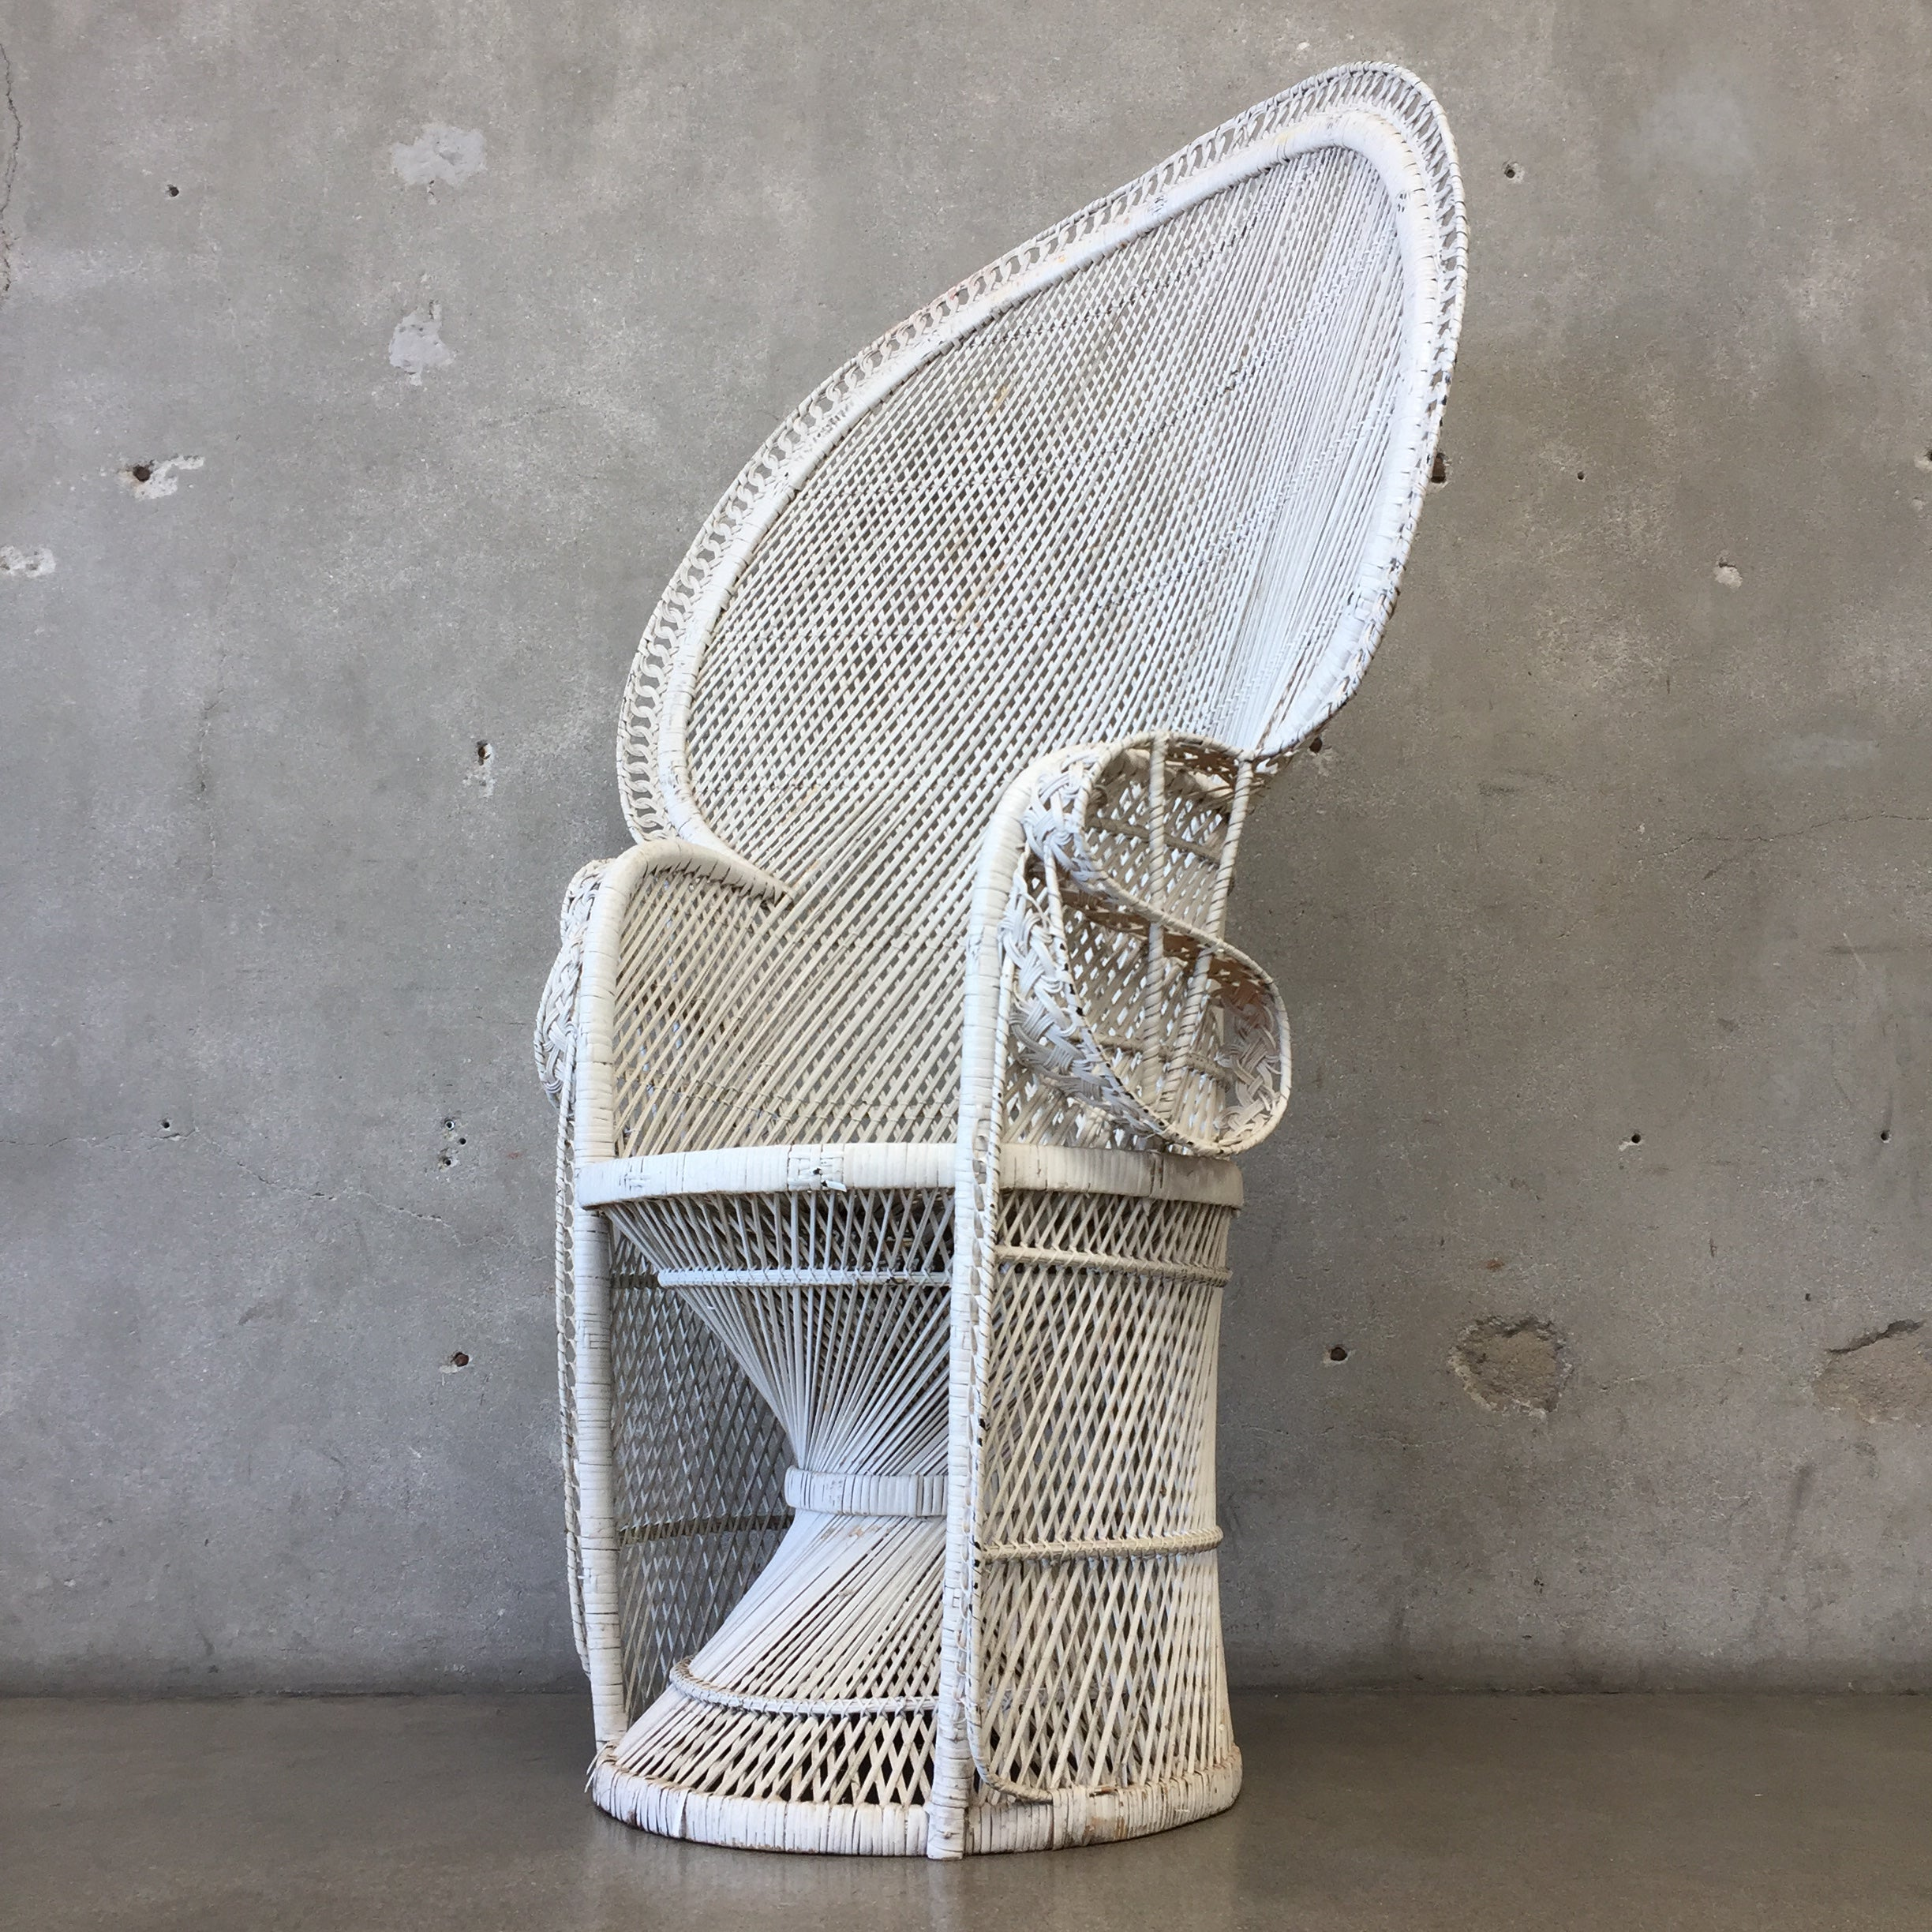 ... Vintage White Peacock Chair ...